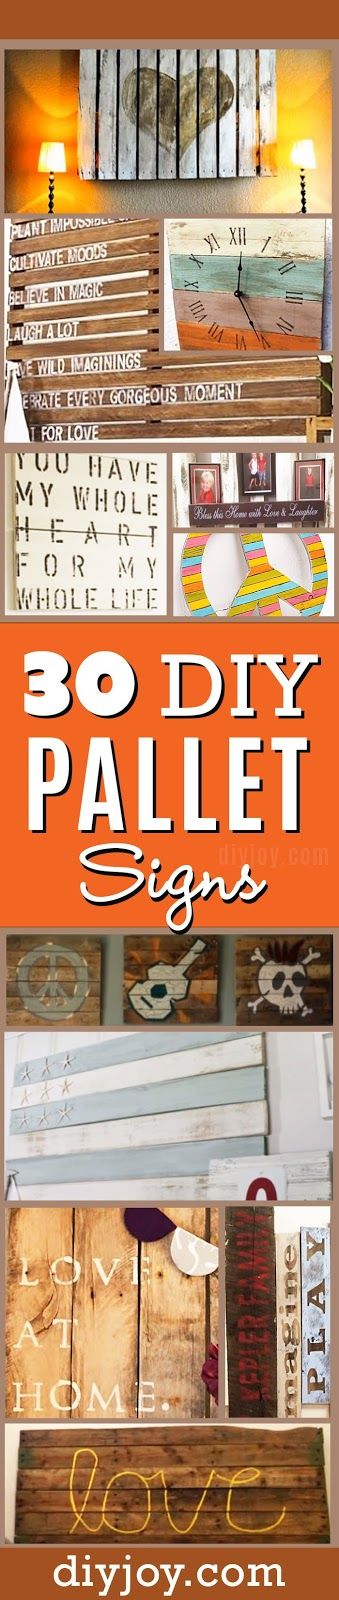 30 Rustic DIY Wood Pallet Art Ideas Your Walls Absolutely Need | Home Decoration